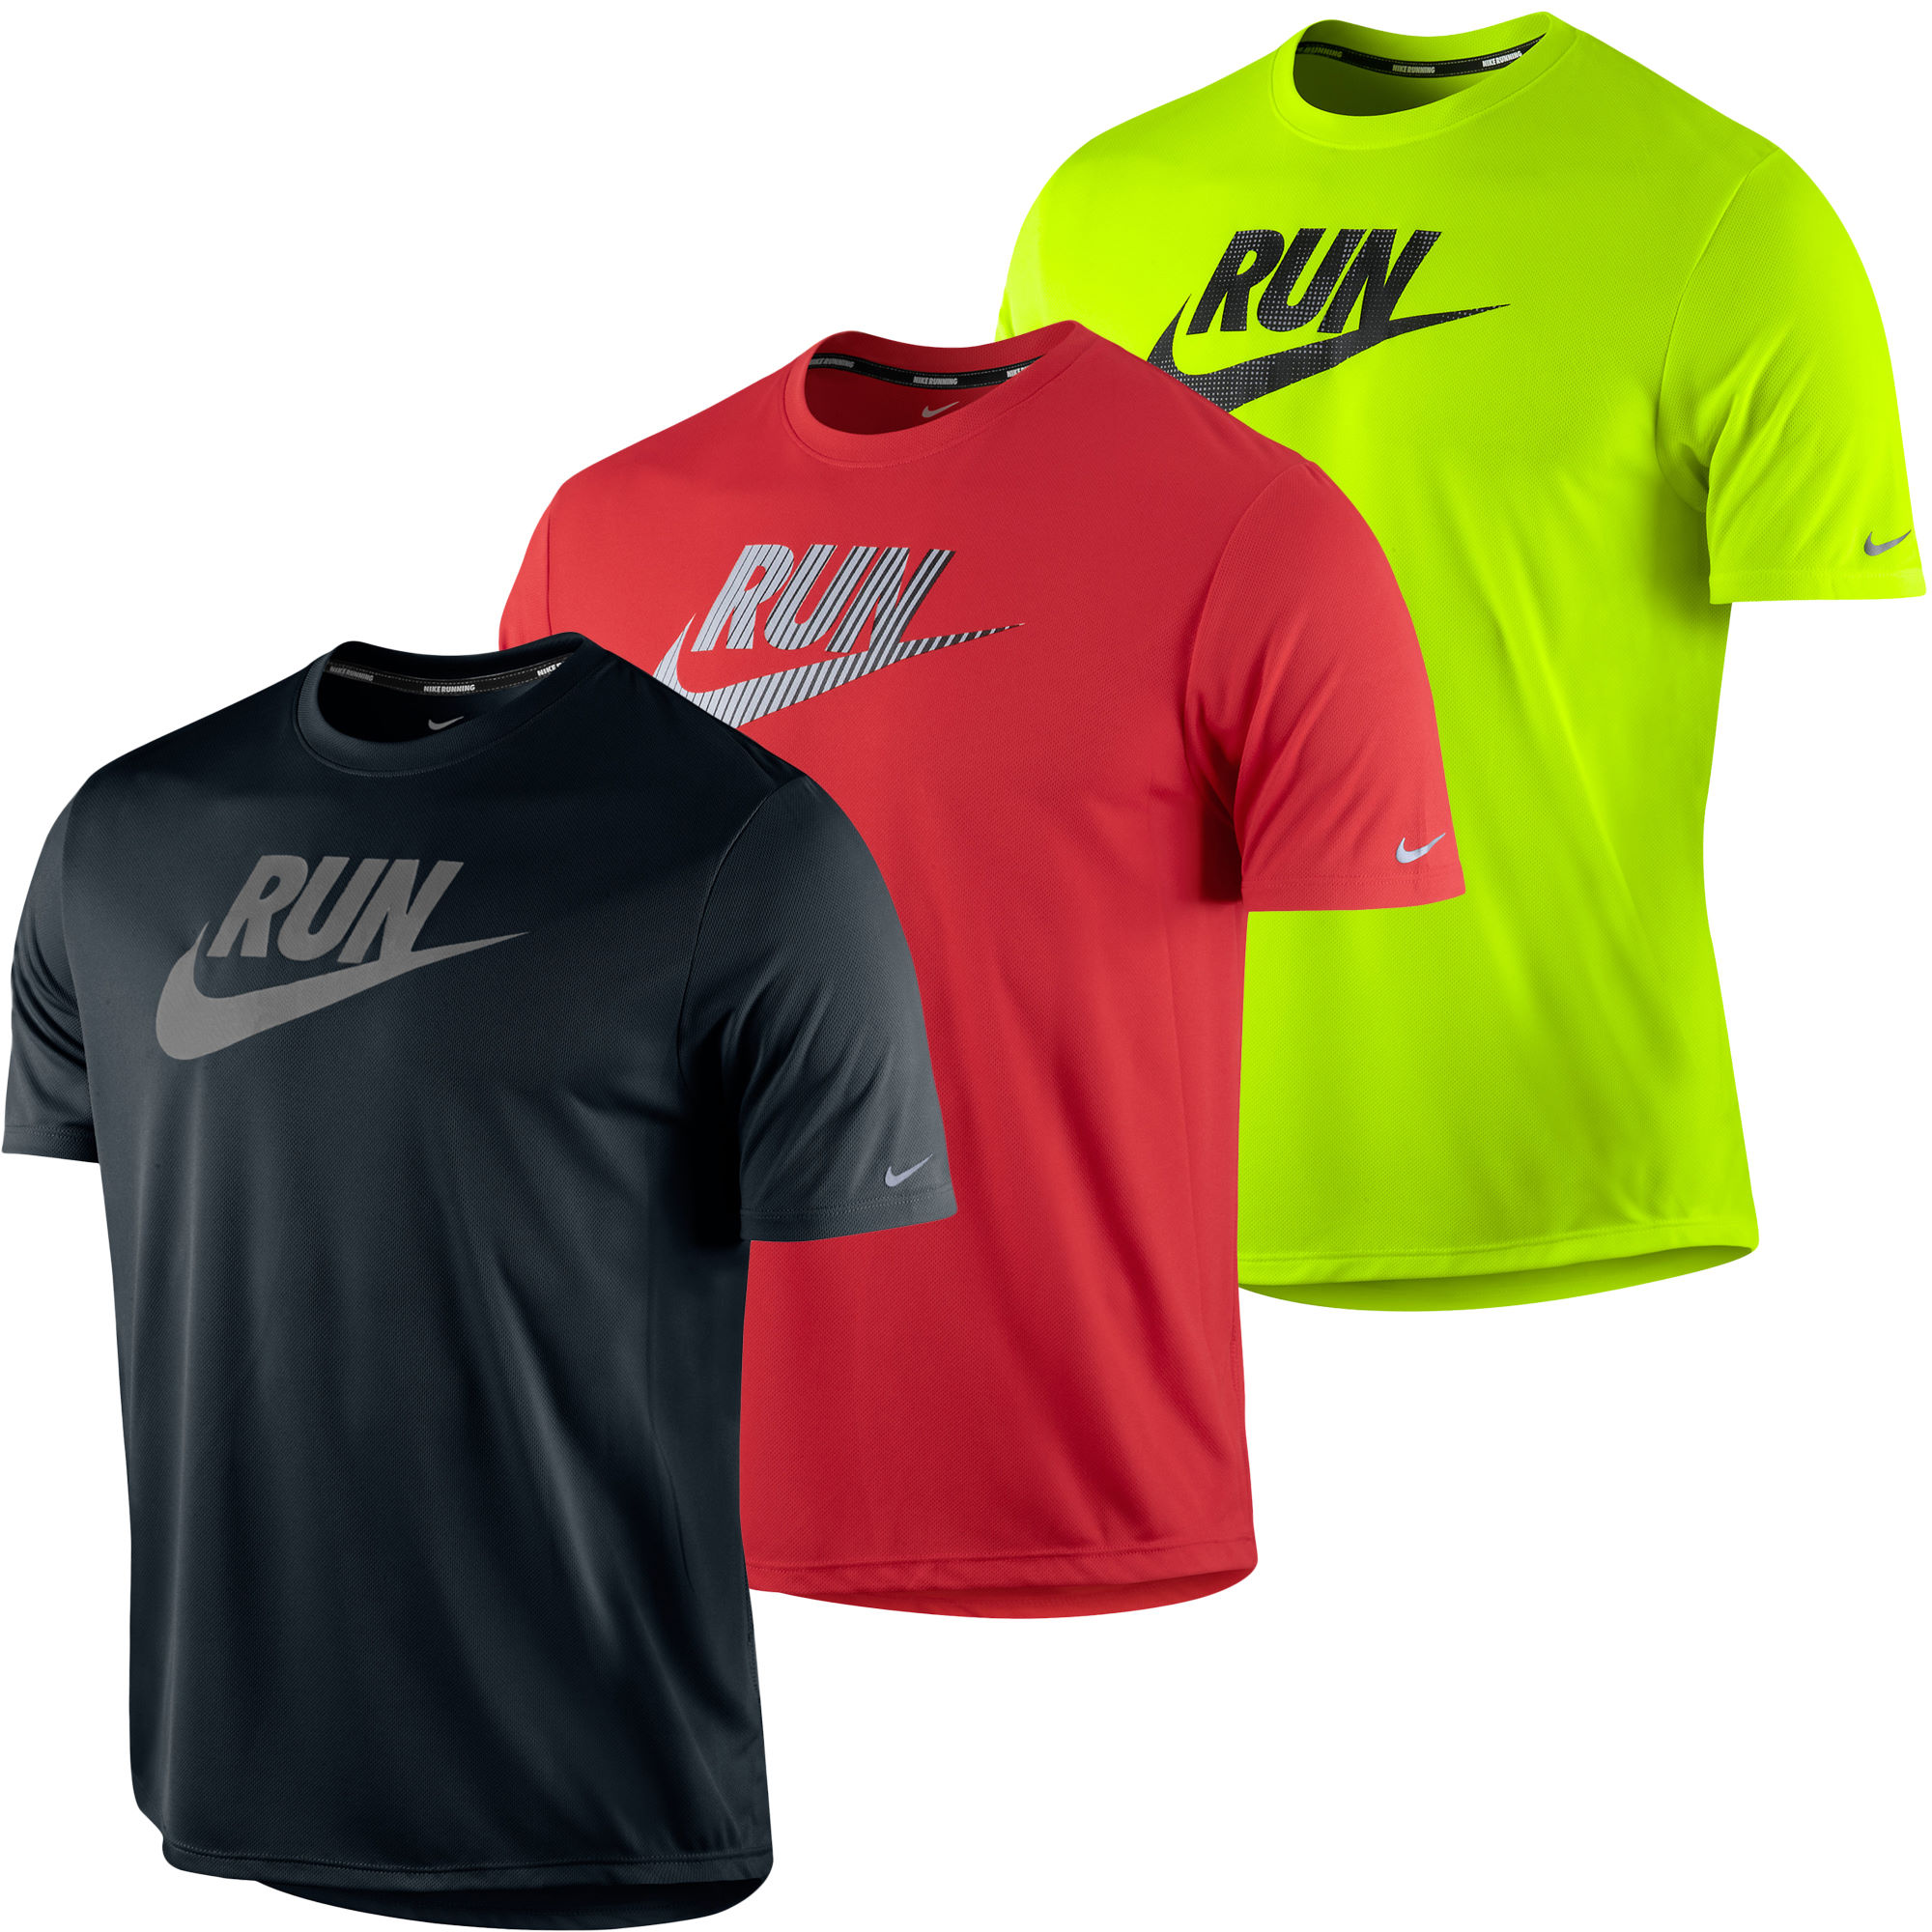 Tracksmith is an independent running company that celebrates the competitive spirit. Shop premium running equipment for racing, training and all conditions.